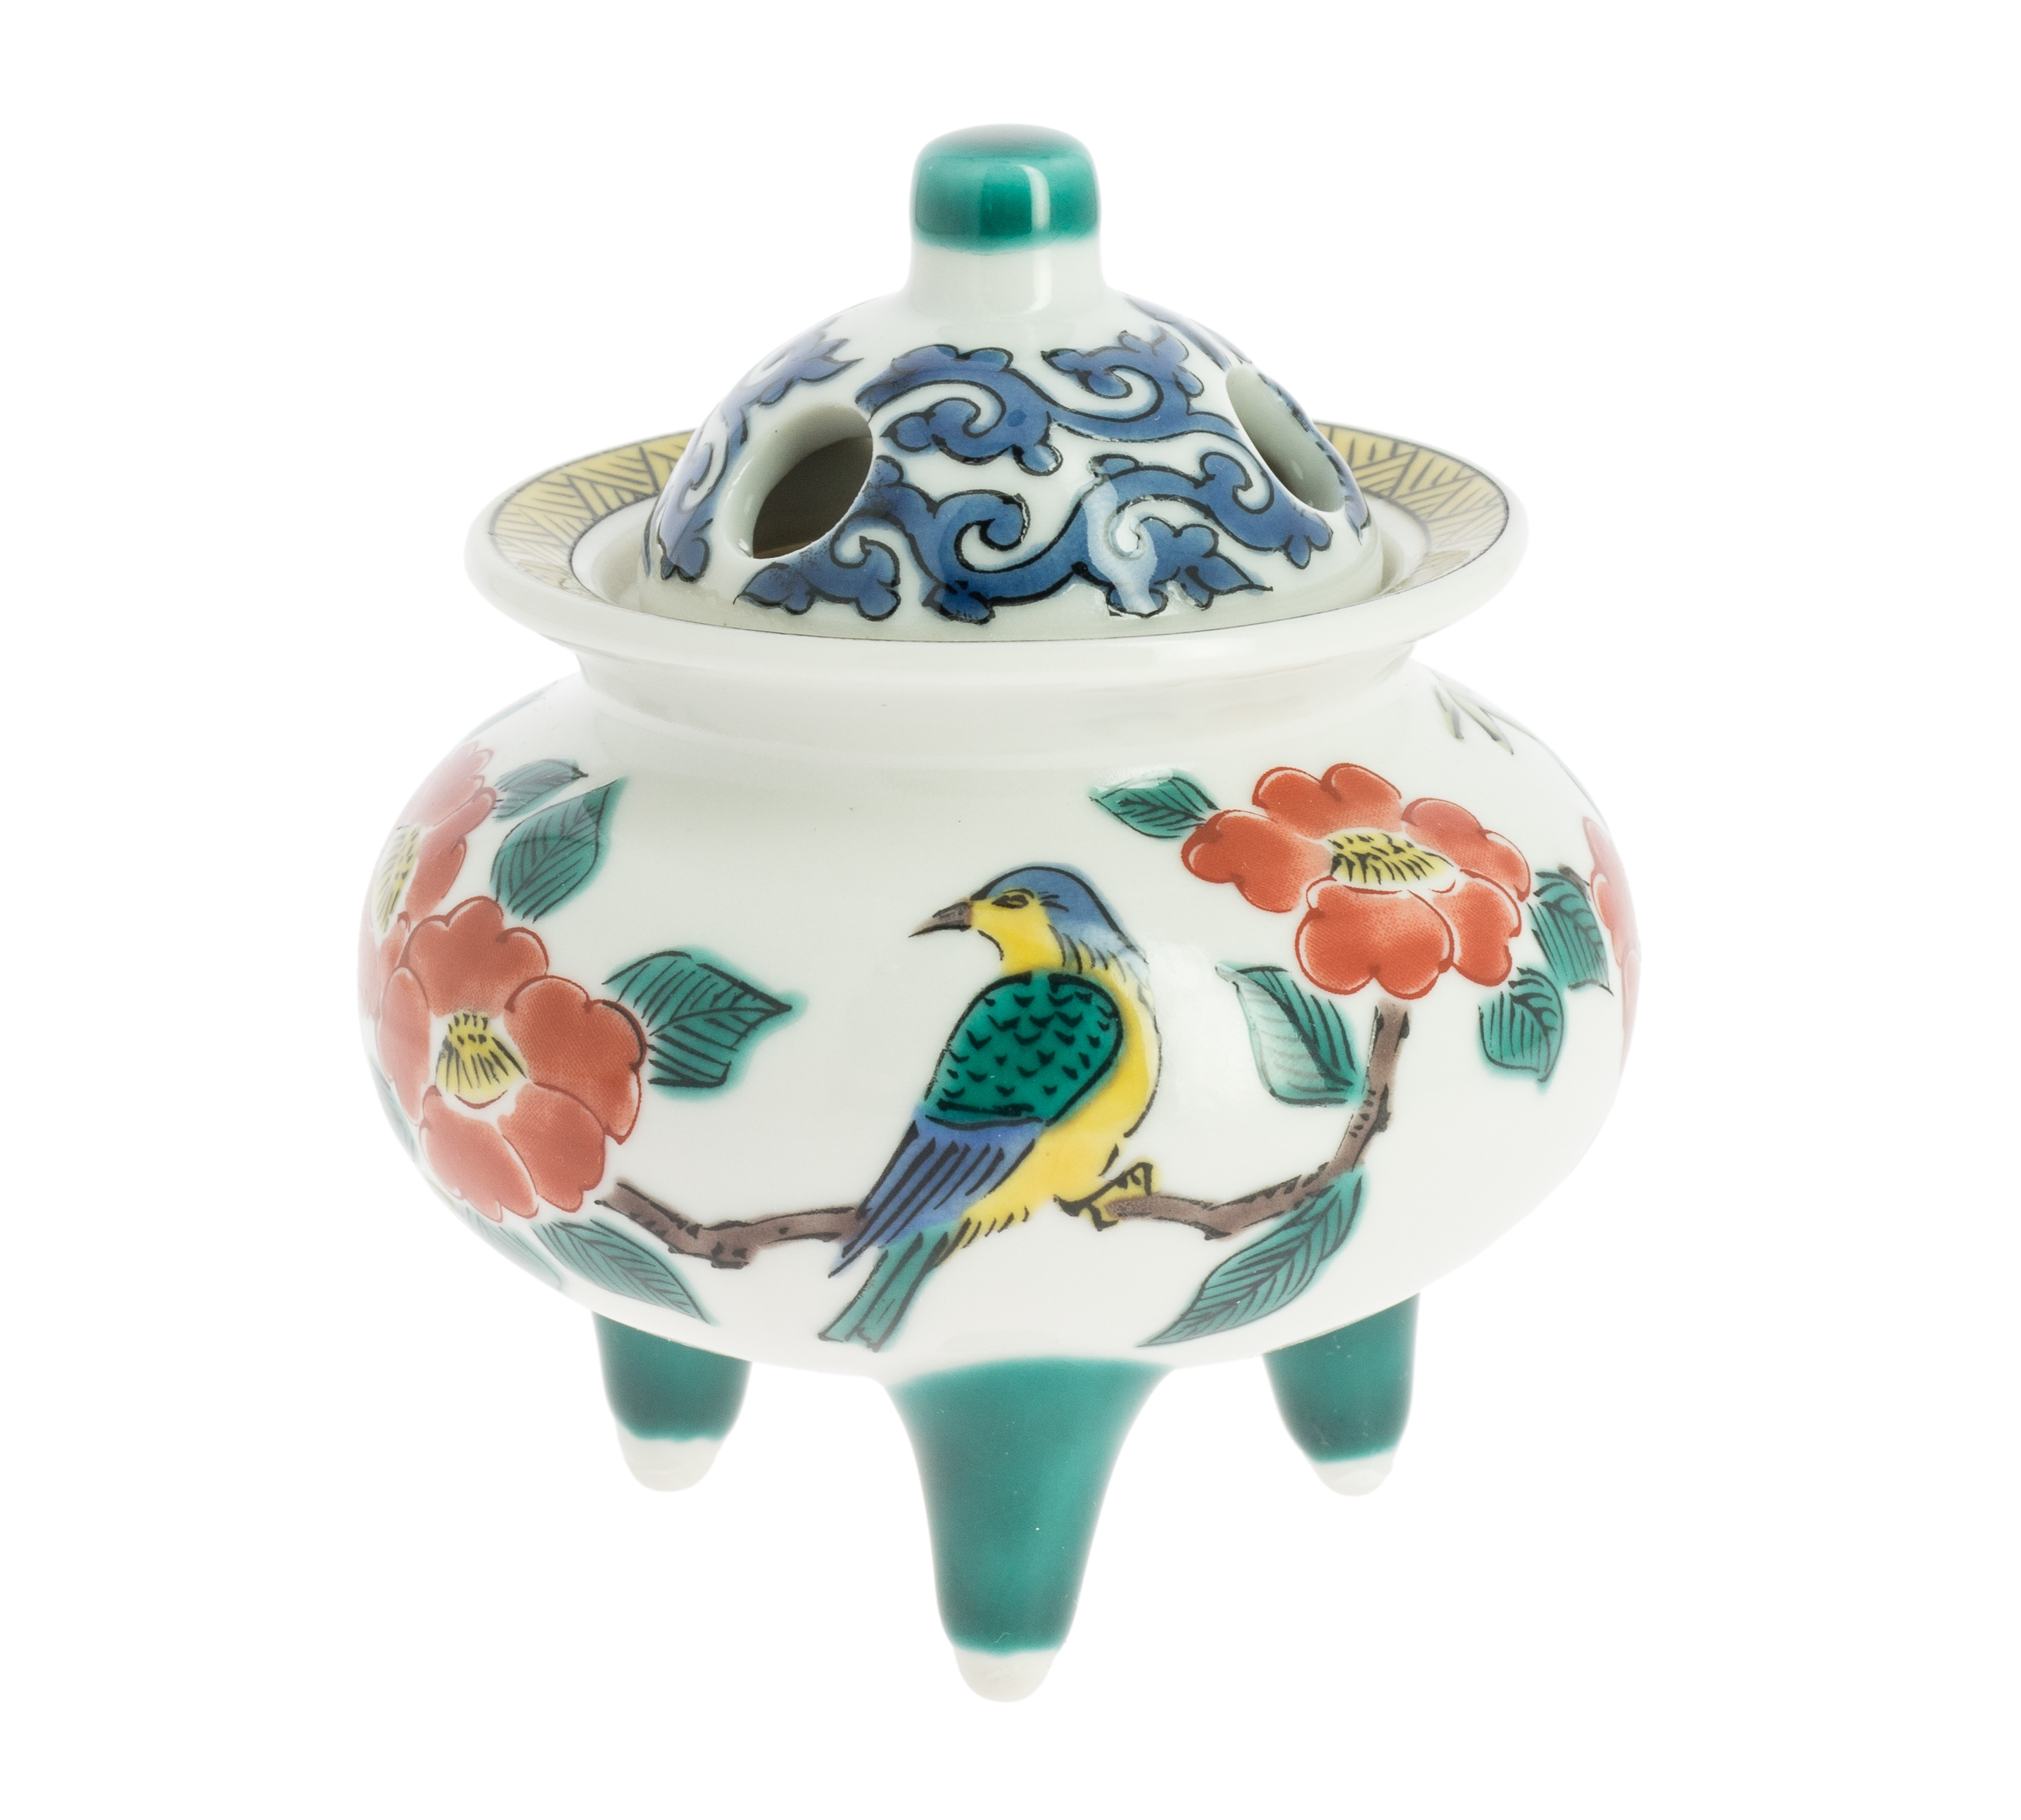 The bird and the camellia incense burner